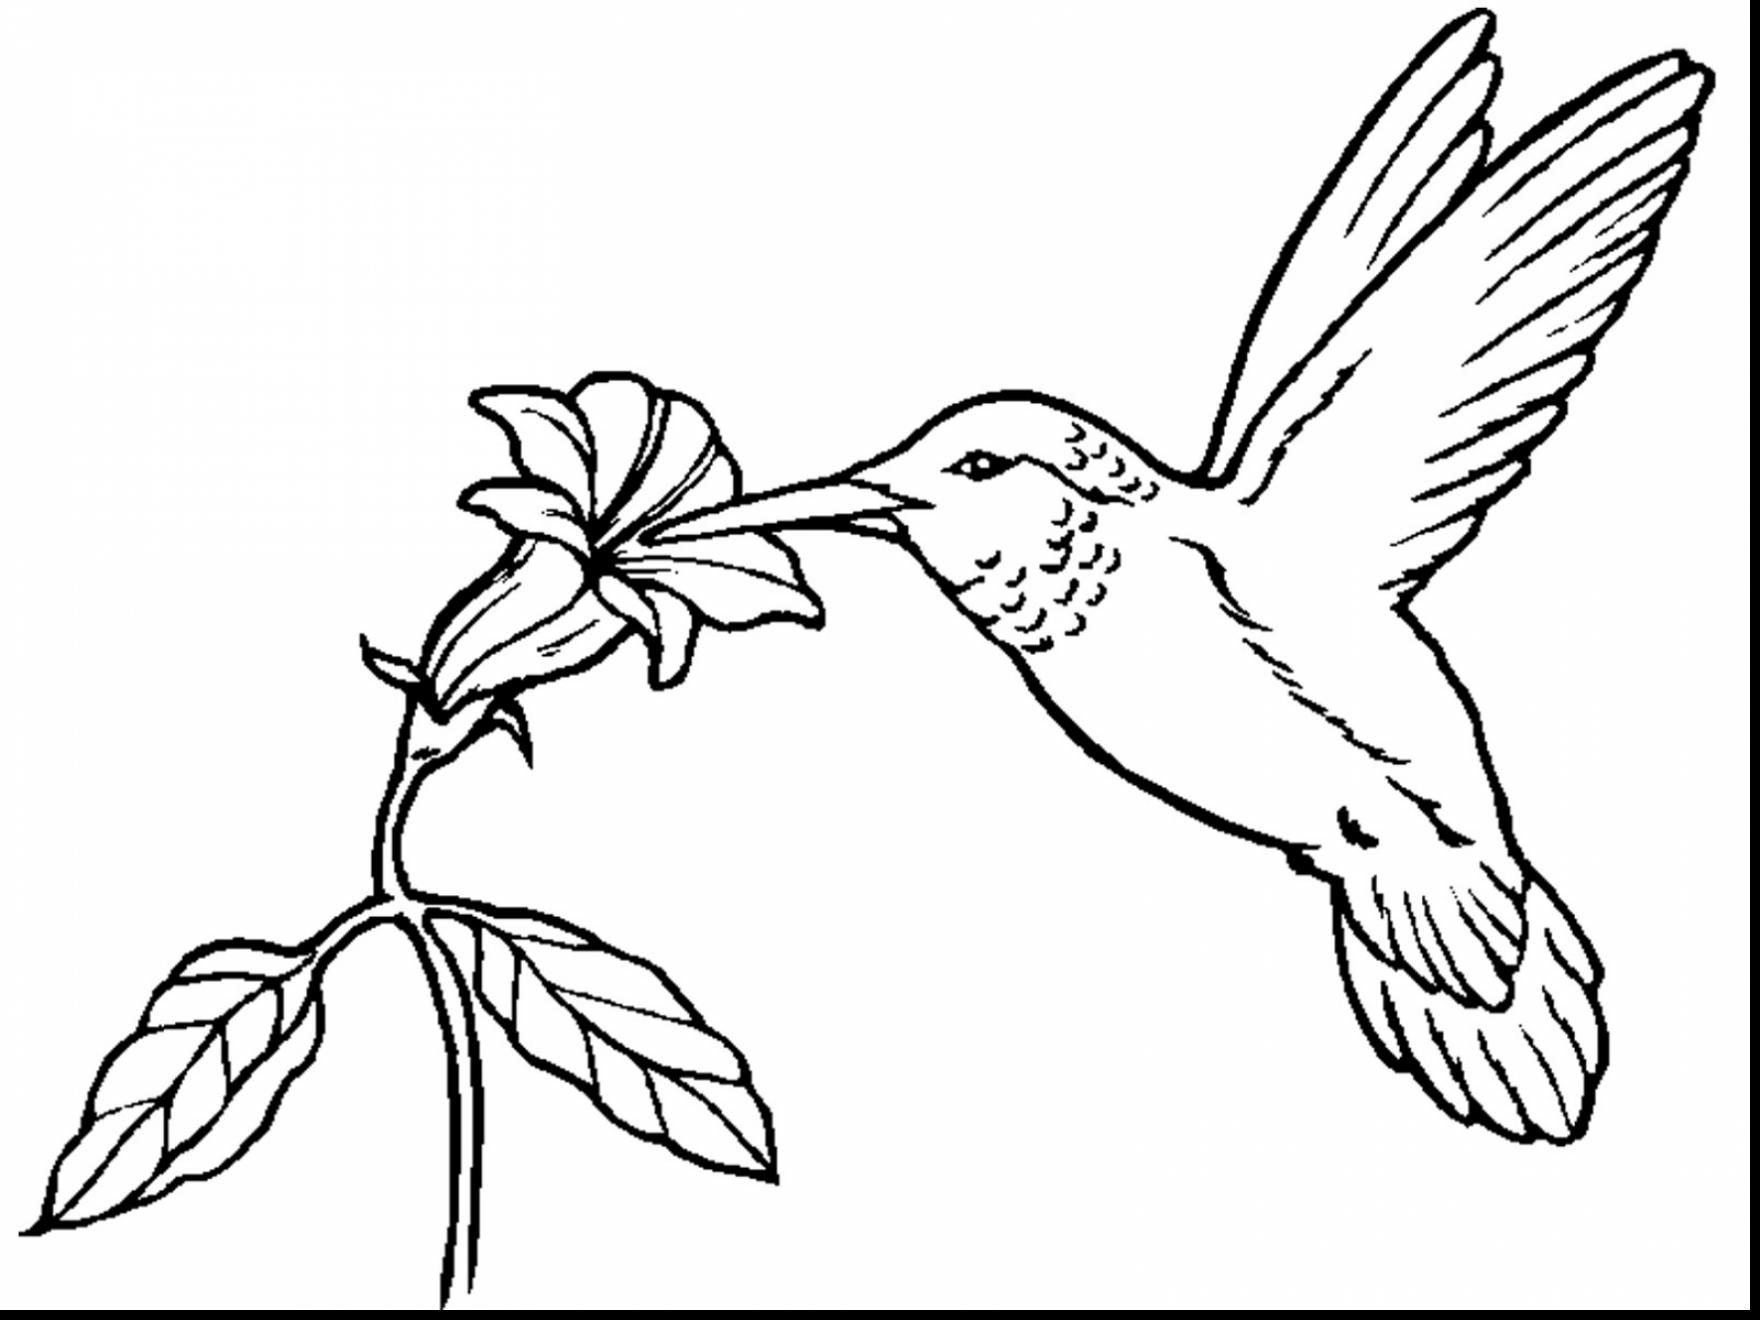 free printable hummingbird coloring pages free printable hummingbird coloring pages for kids free printable hummingbird pages coloring